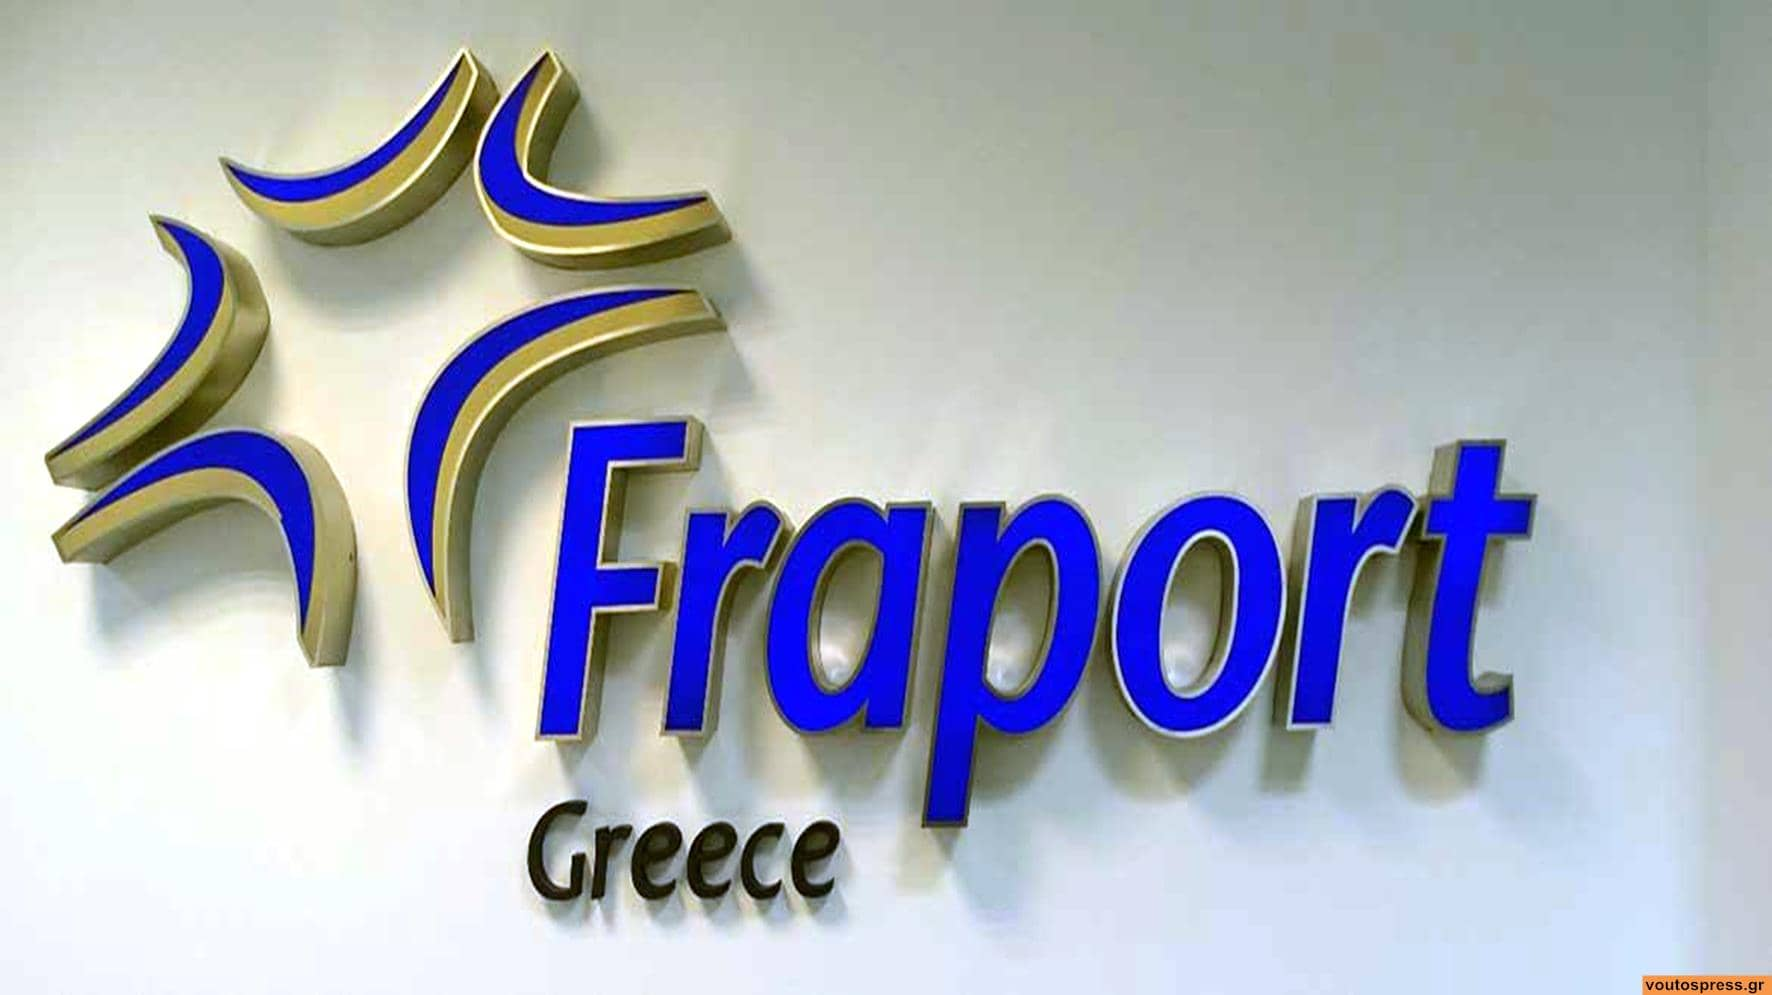 FRAPORTGREECE (Copy)